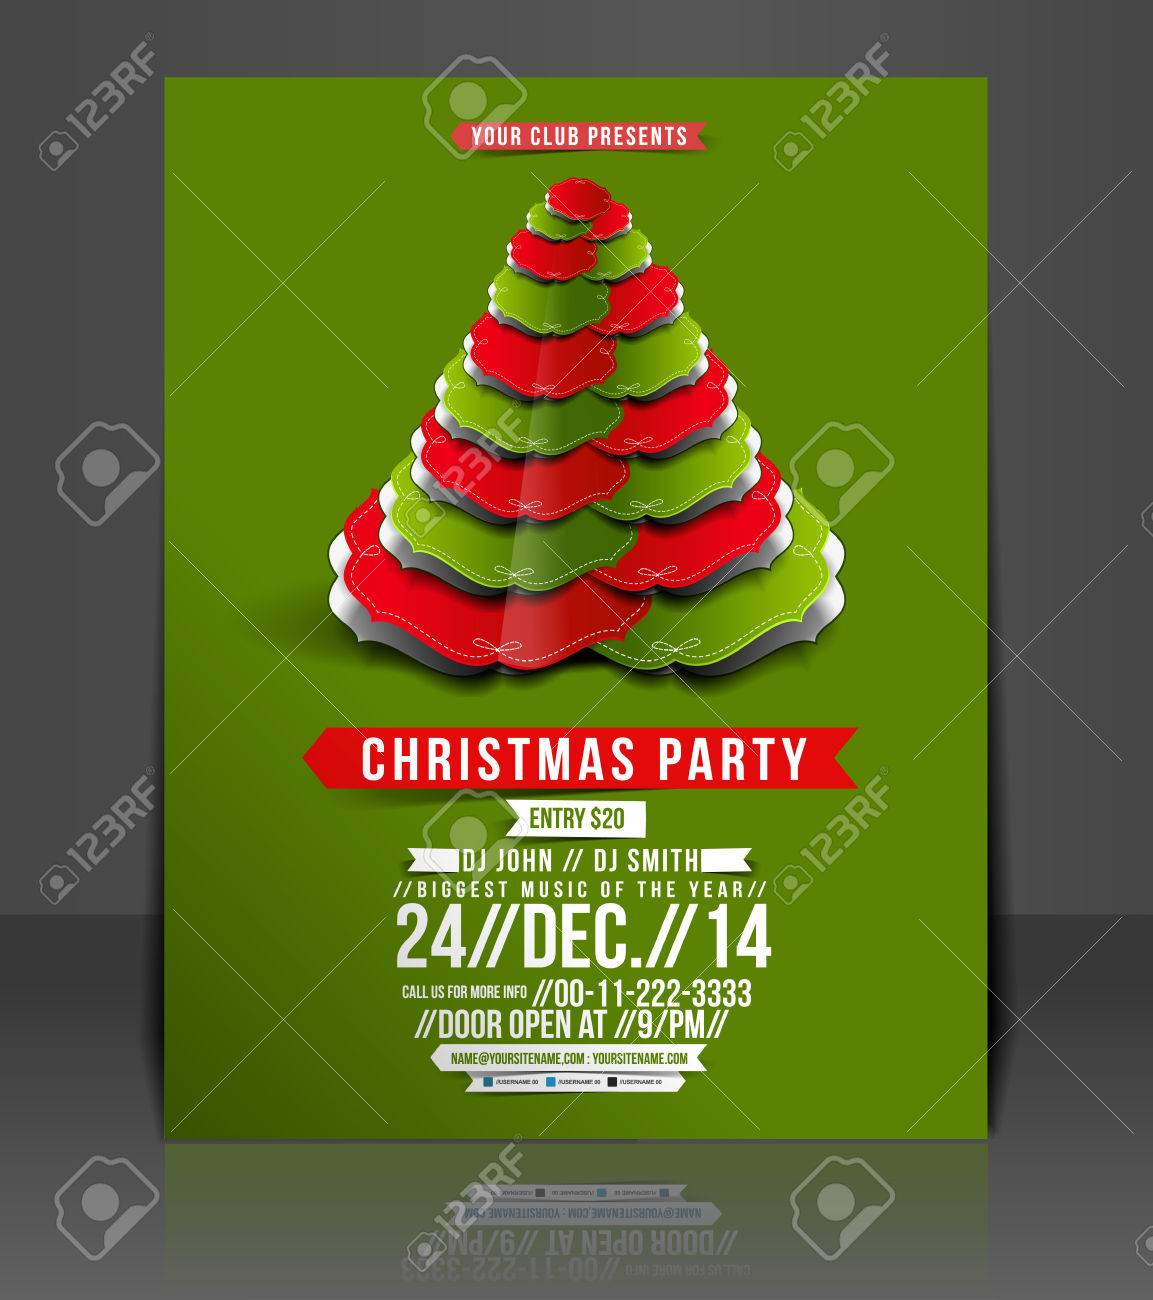 christmas party flyer poster template royalty cliparts christmas party flyer poster template stock vector 26787697